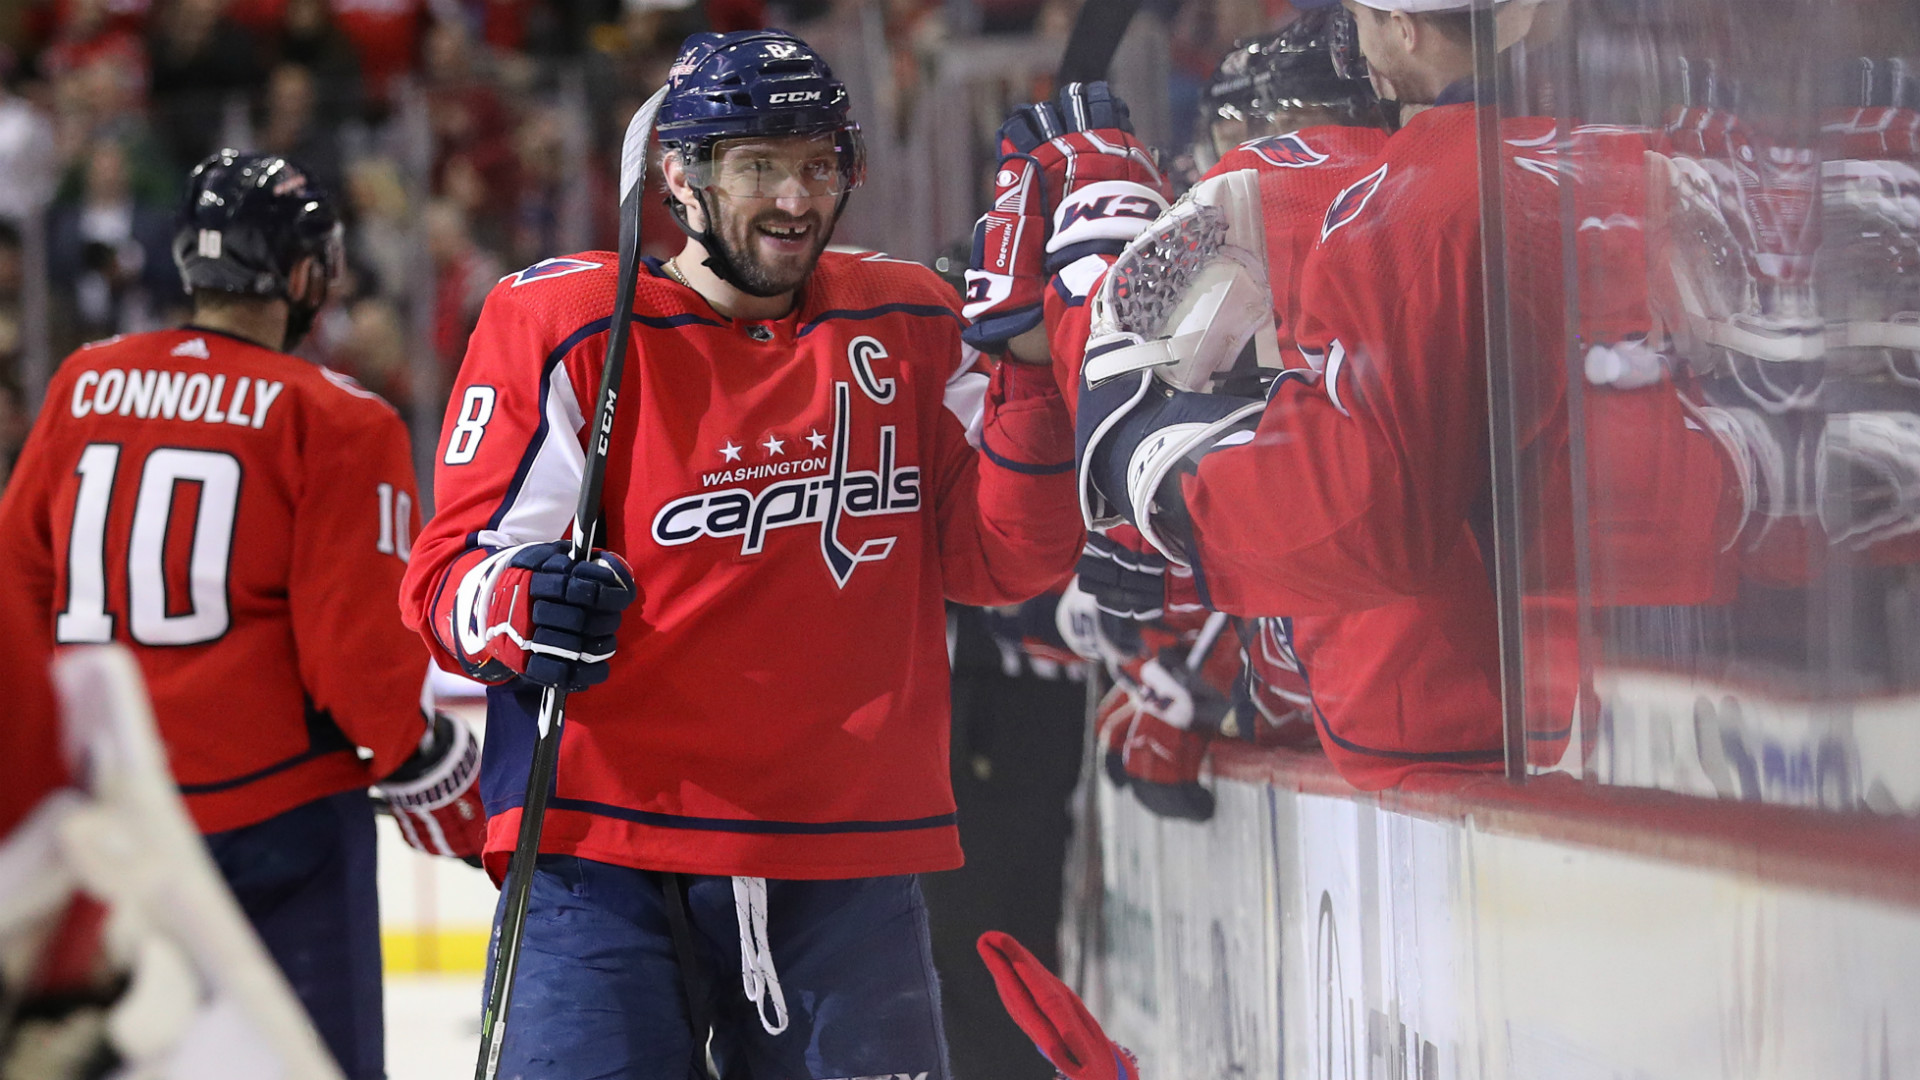 d989a72efb69c3 Alexander Ovechkin notches hat trick, extends lead in NHL goal scoring race  | Sporting News